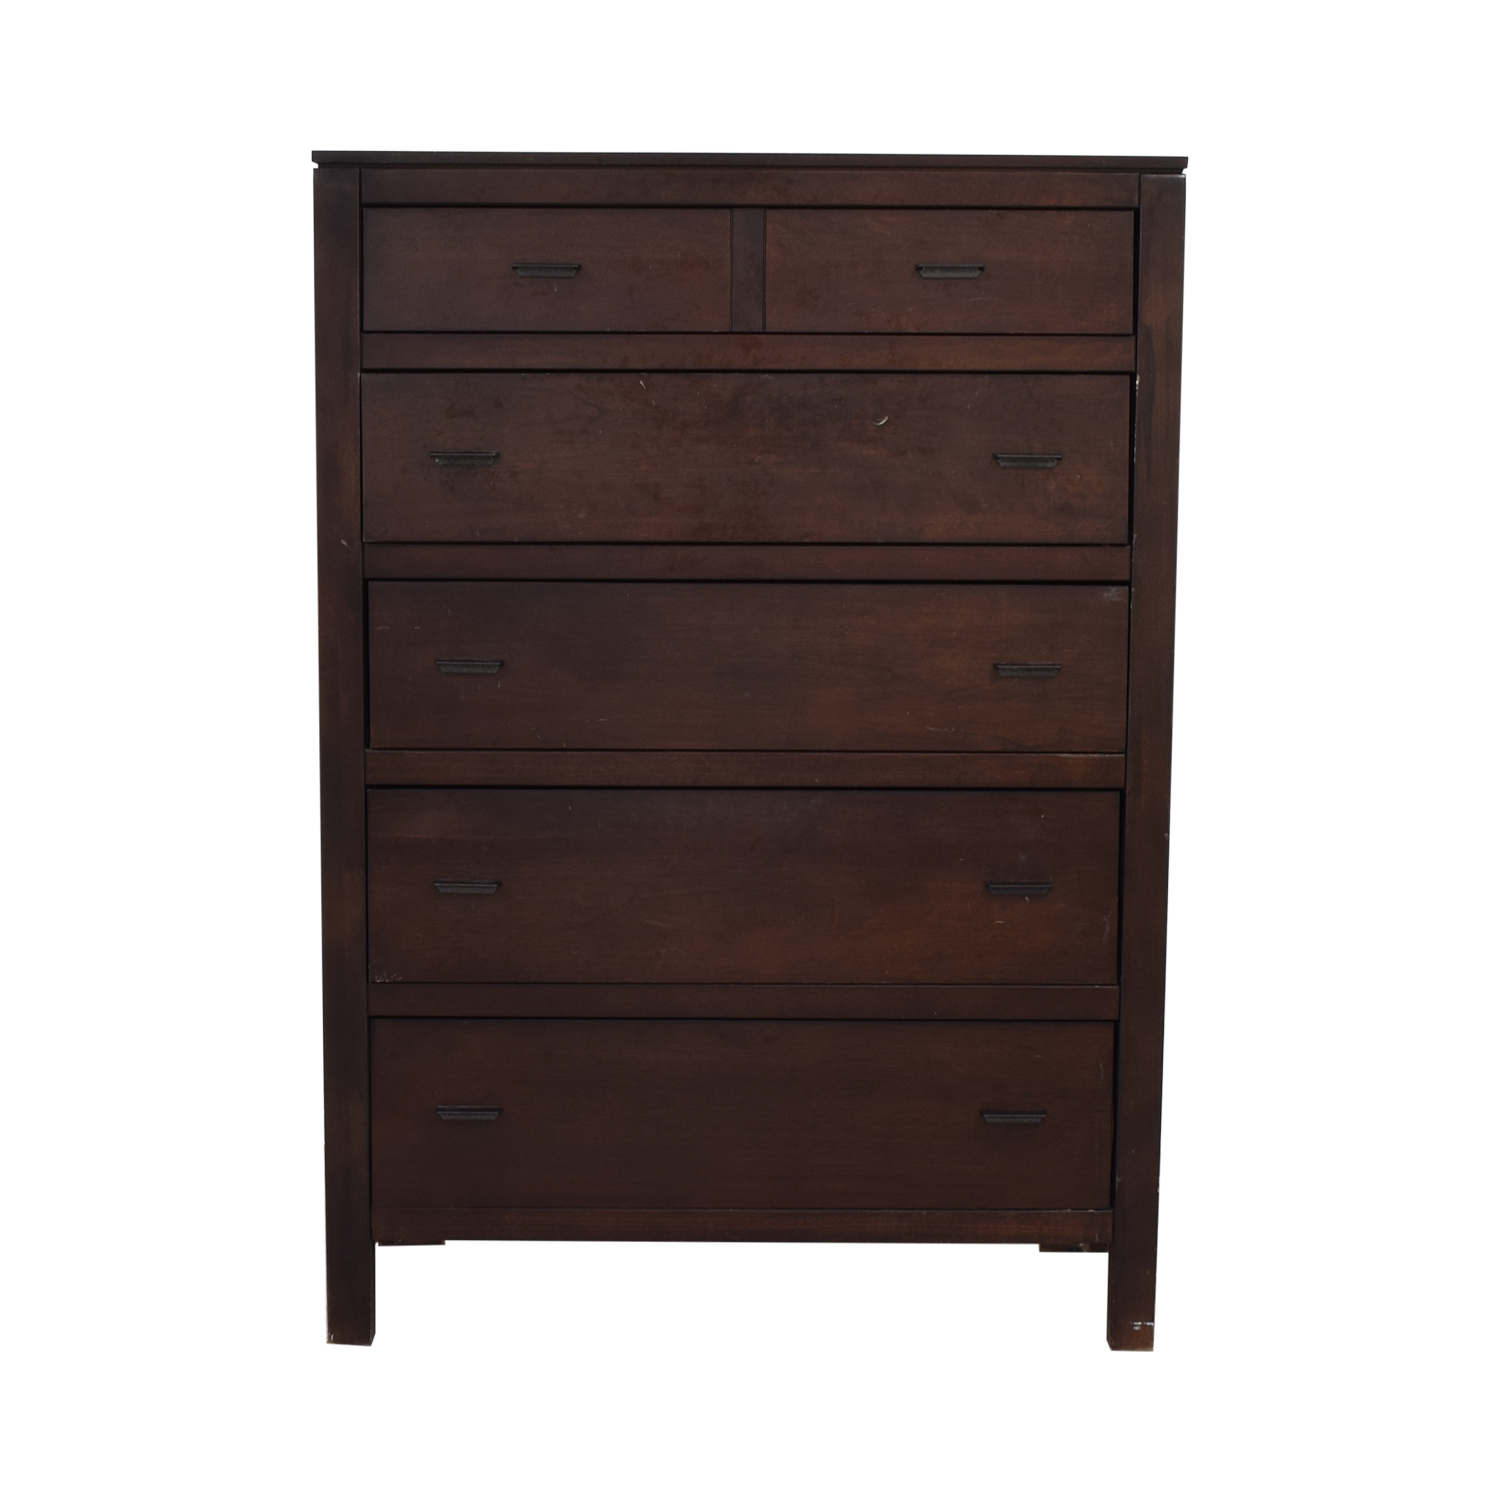 Vaughan-Bassett Dark Brown Dresser / Dressers